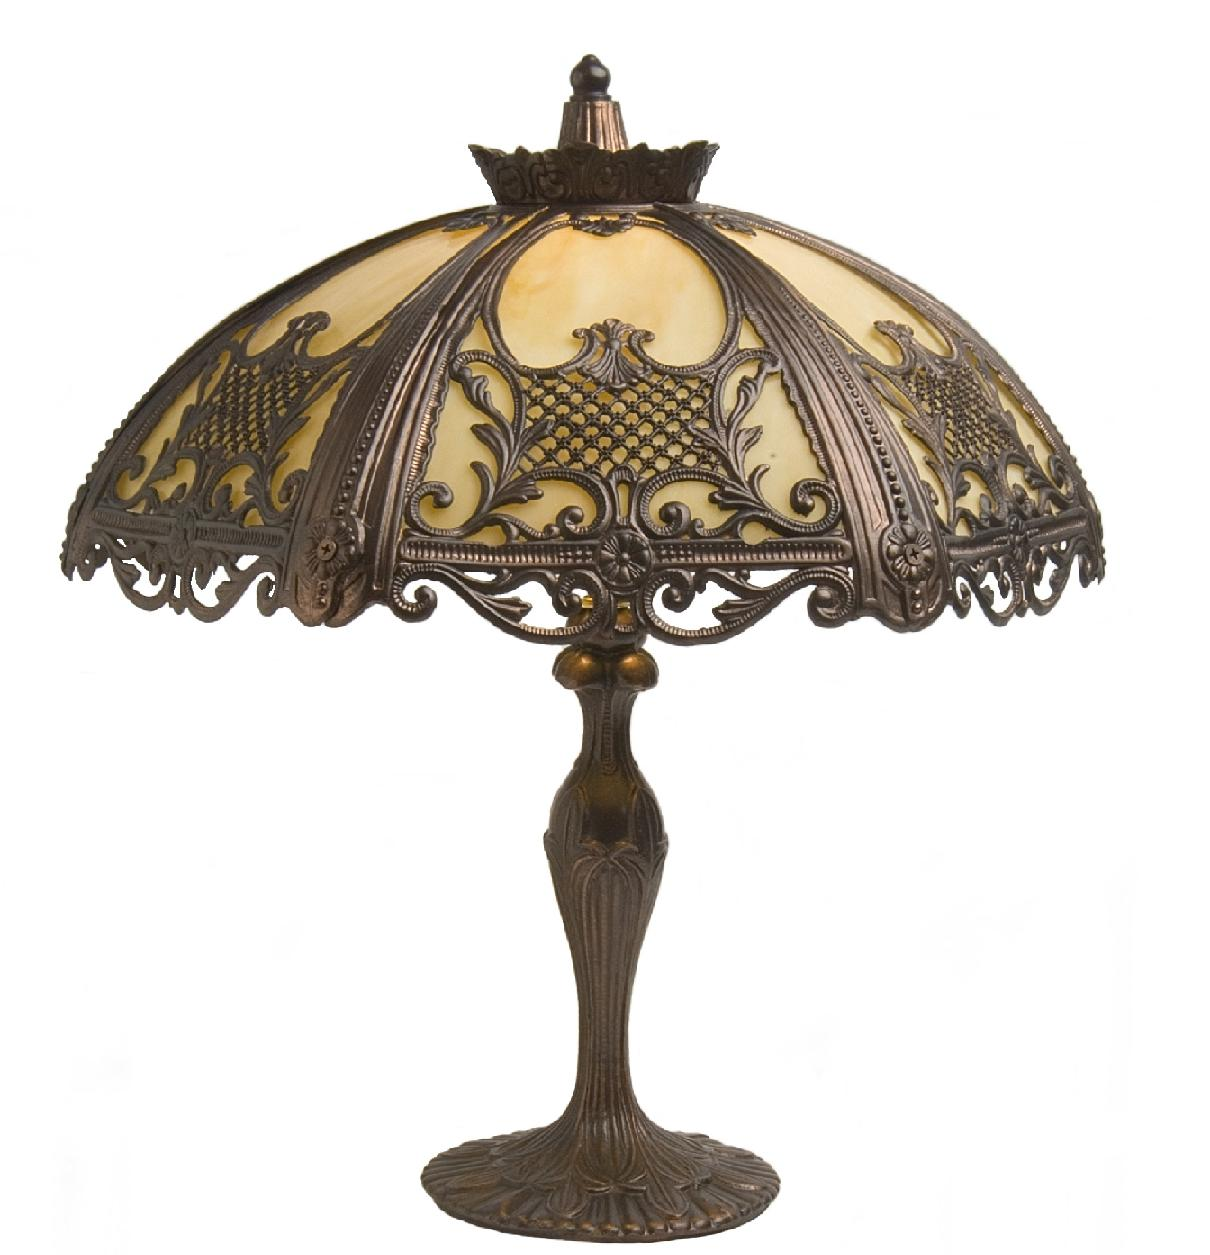 Rococo Lamp Pictures to pin on Pinterest